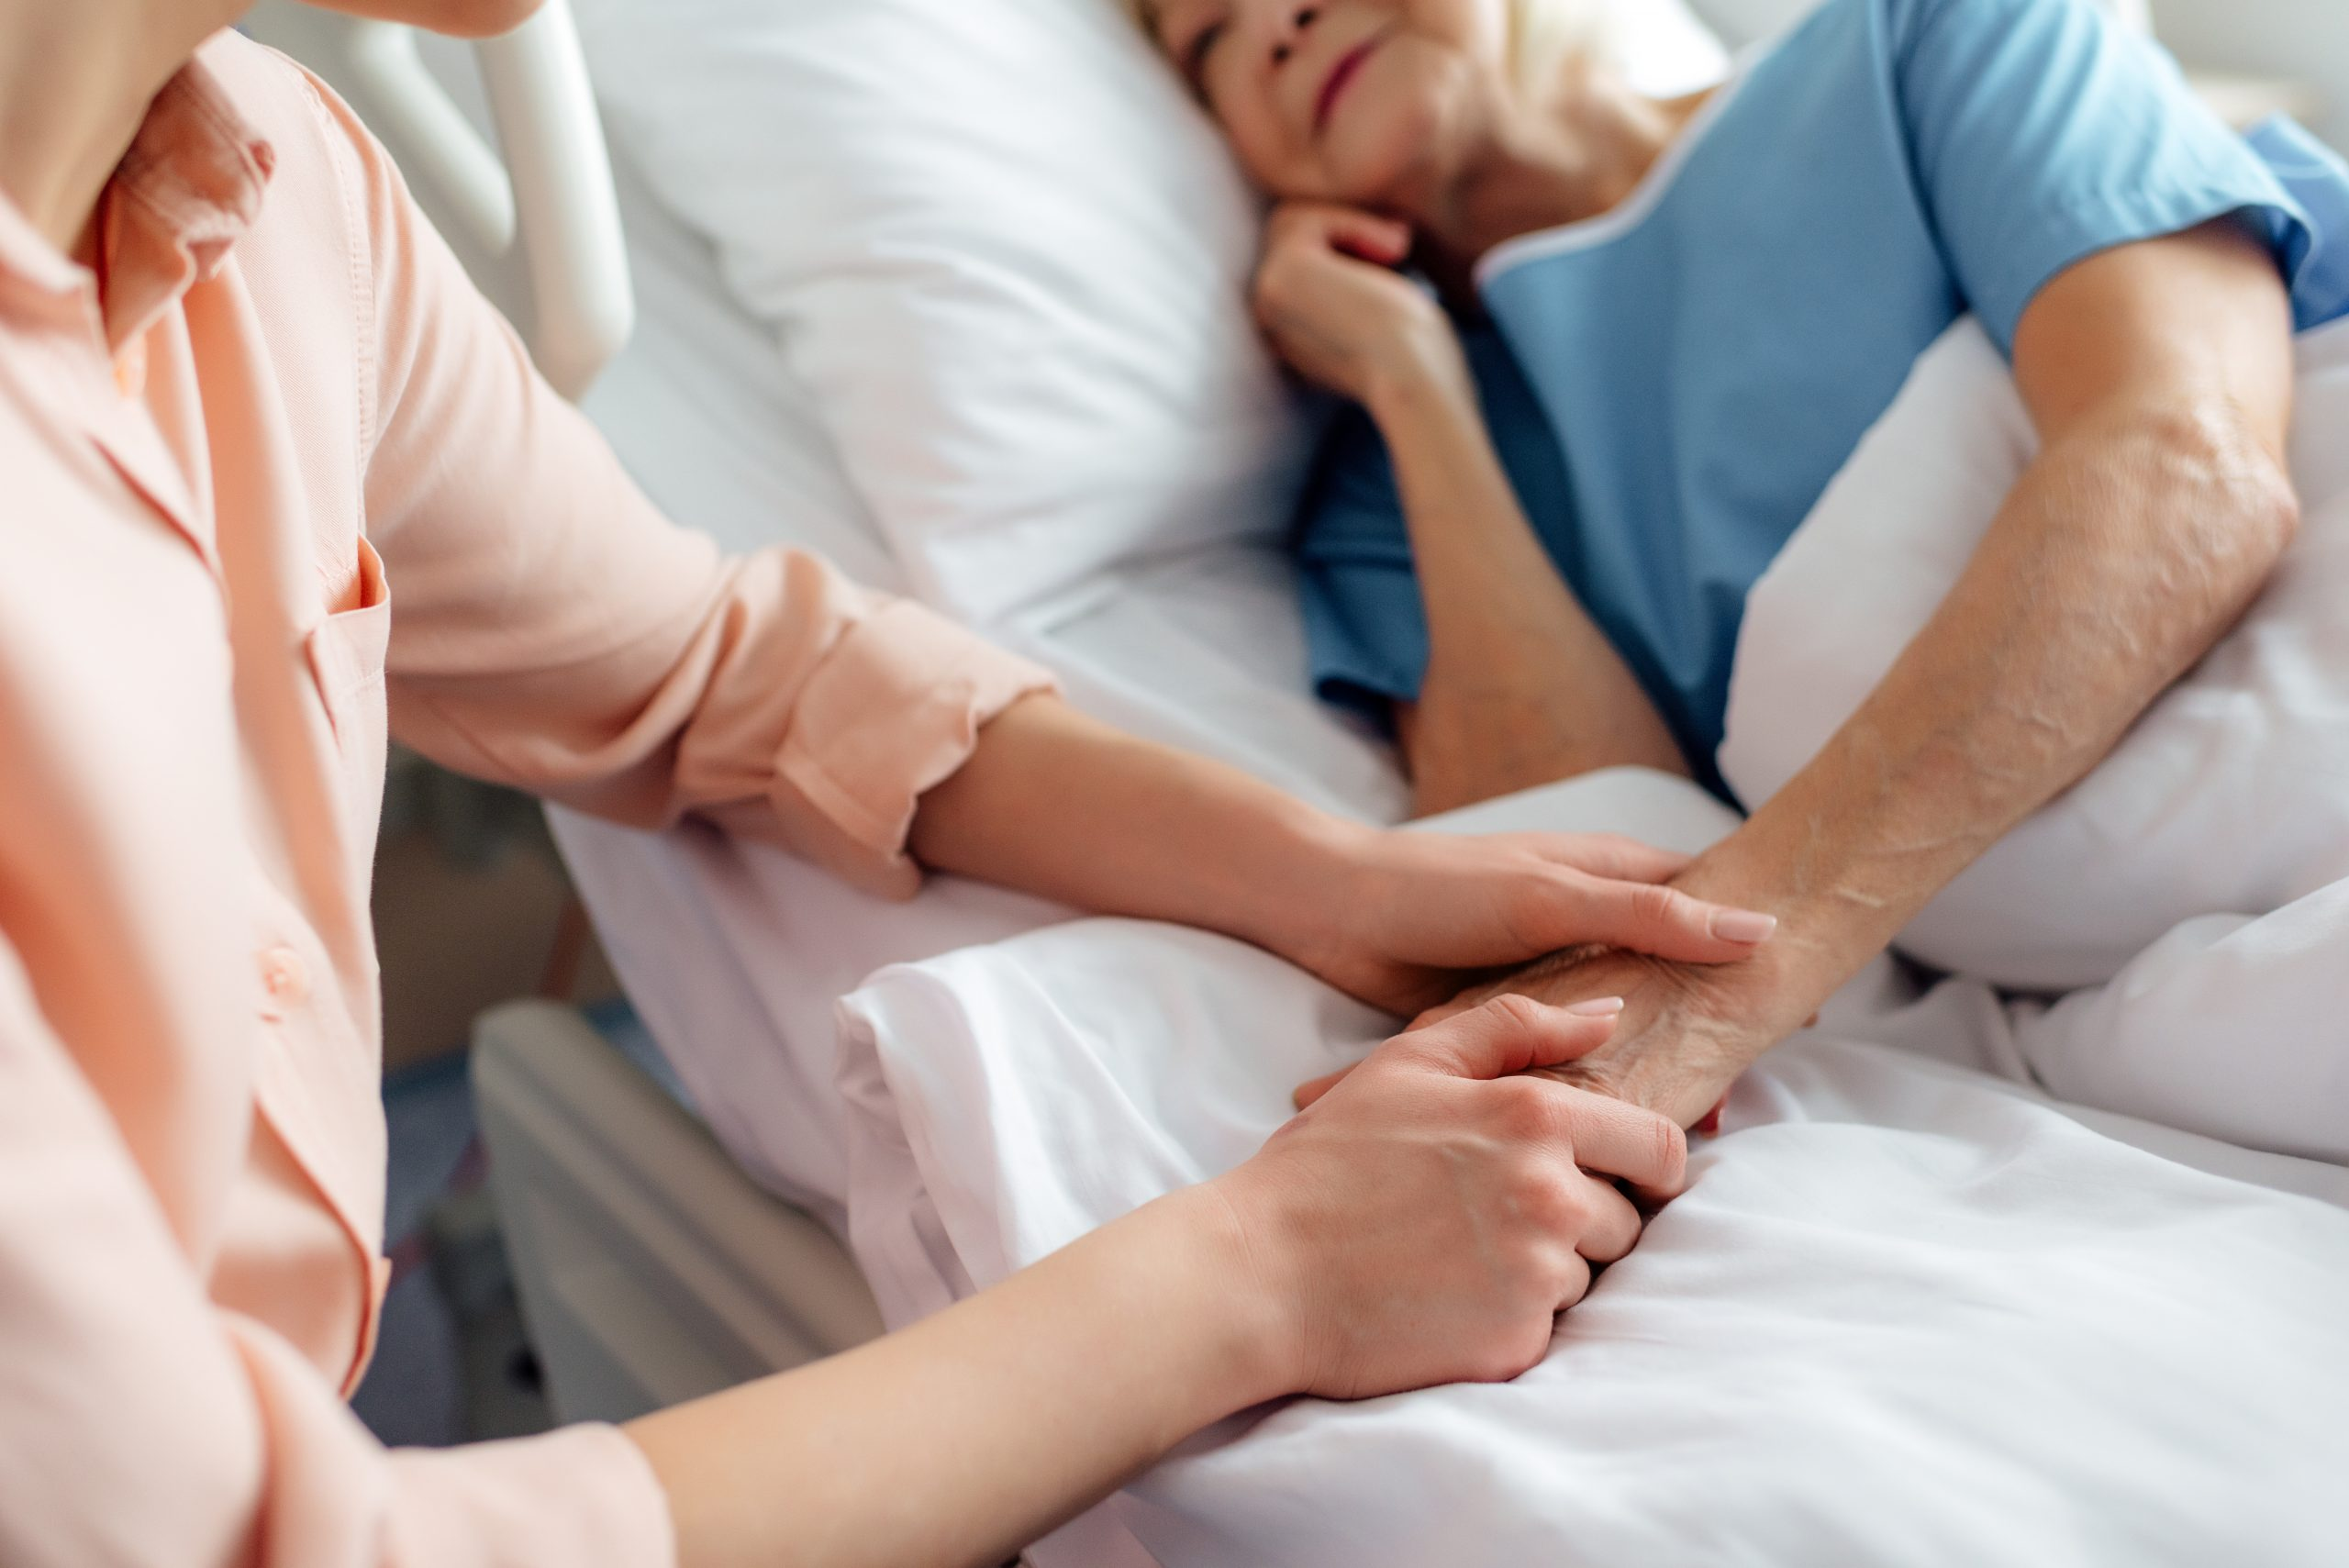 cropped view of daughter sitting near senior mother in bed and holding hands in hospital